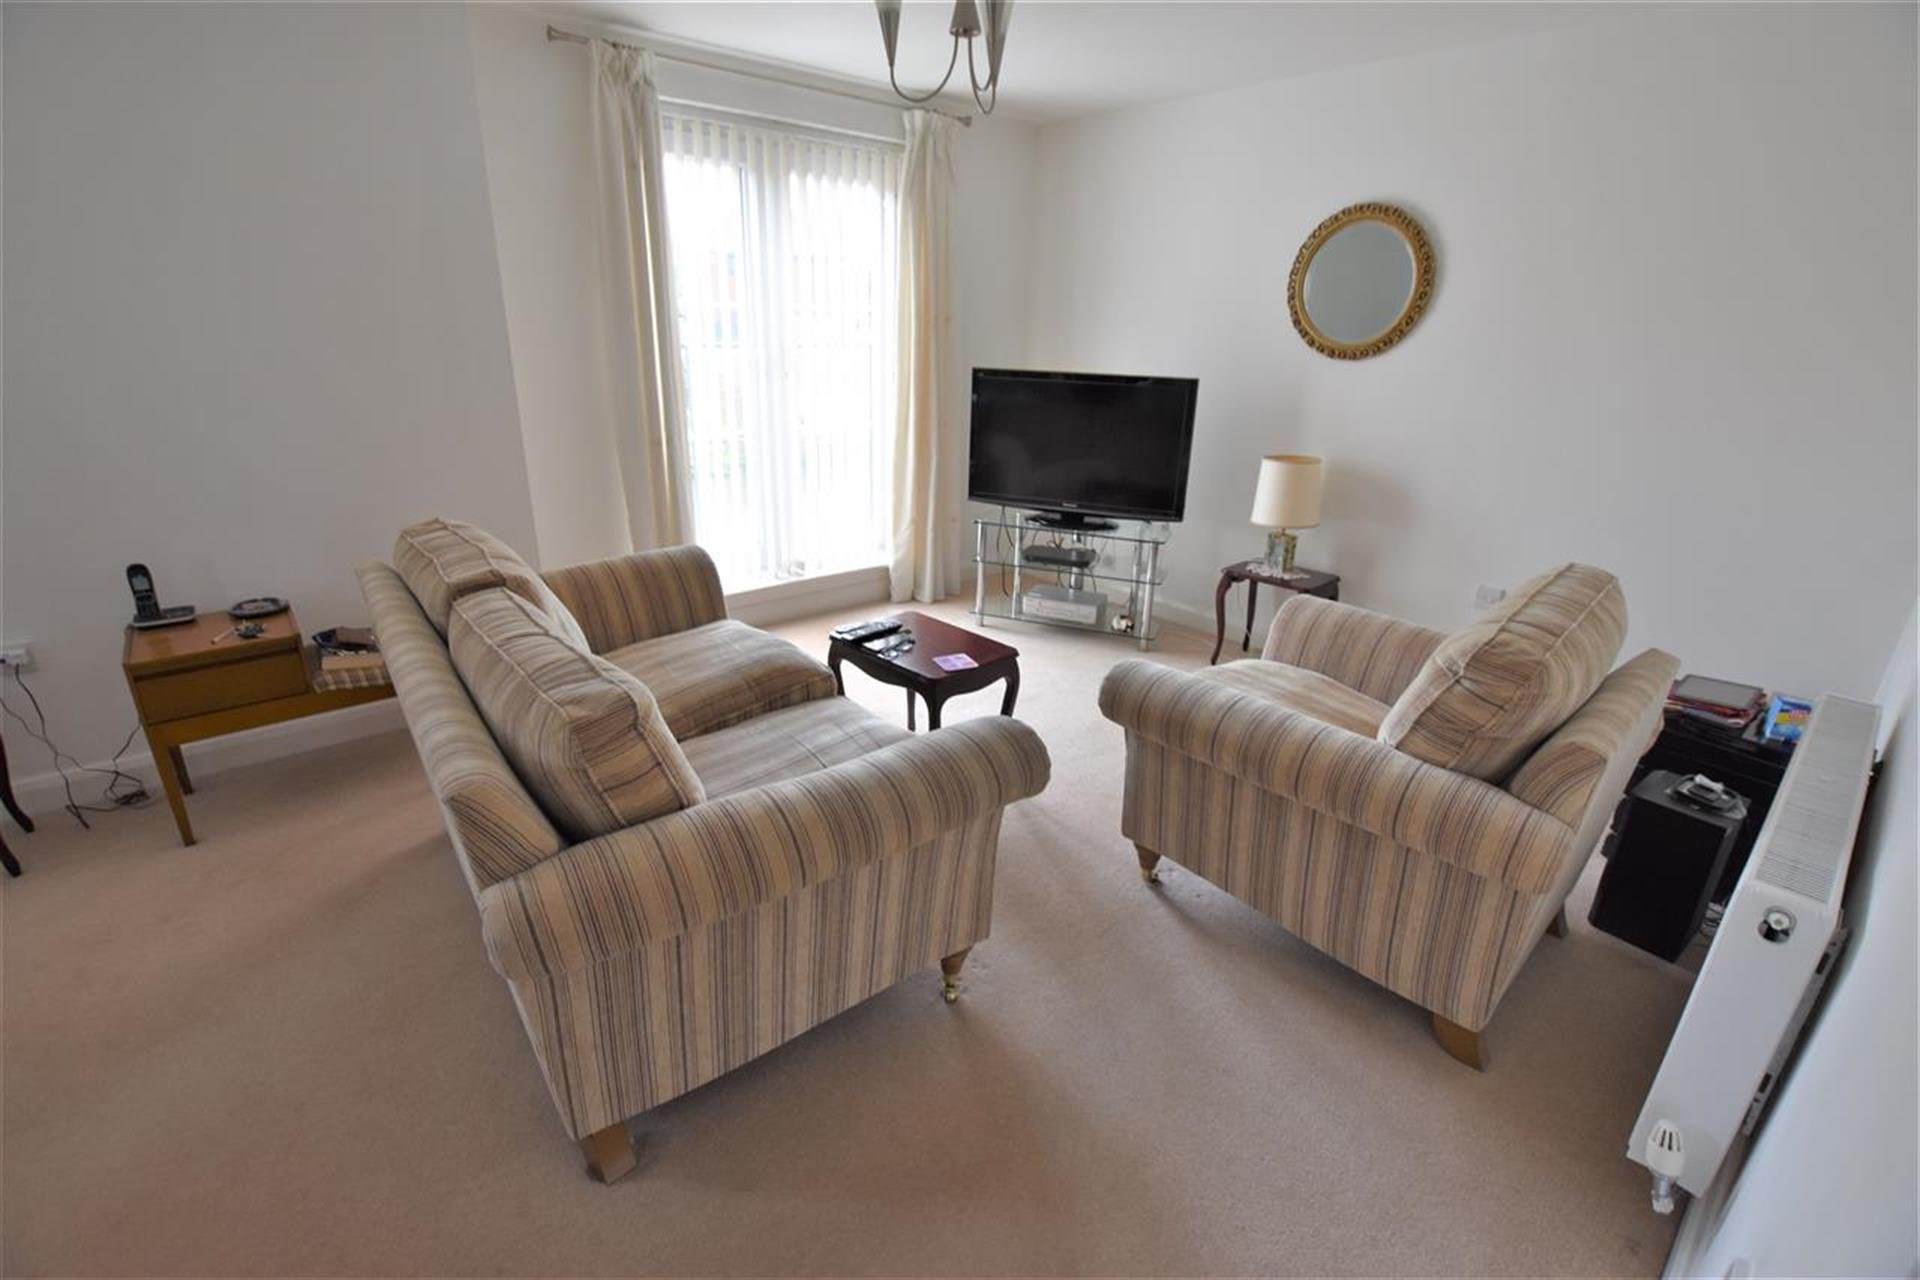 2 Bedroom Apartment Flat / Apartment For Sale - Reception Room